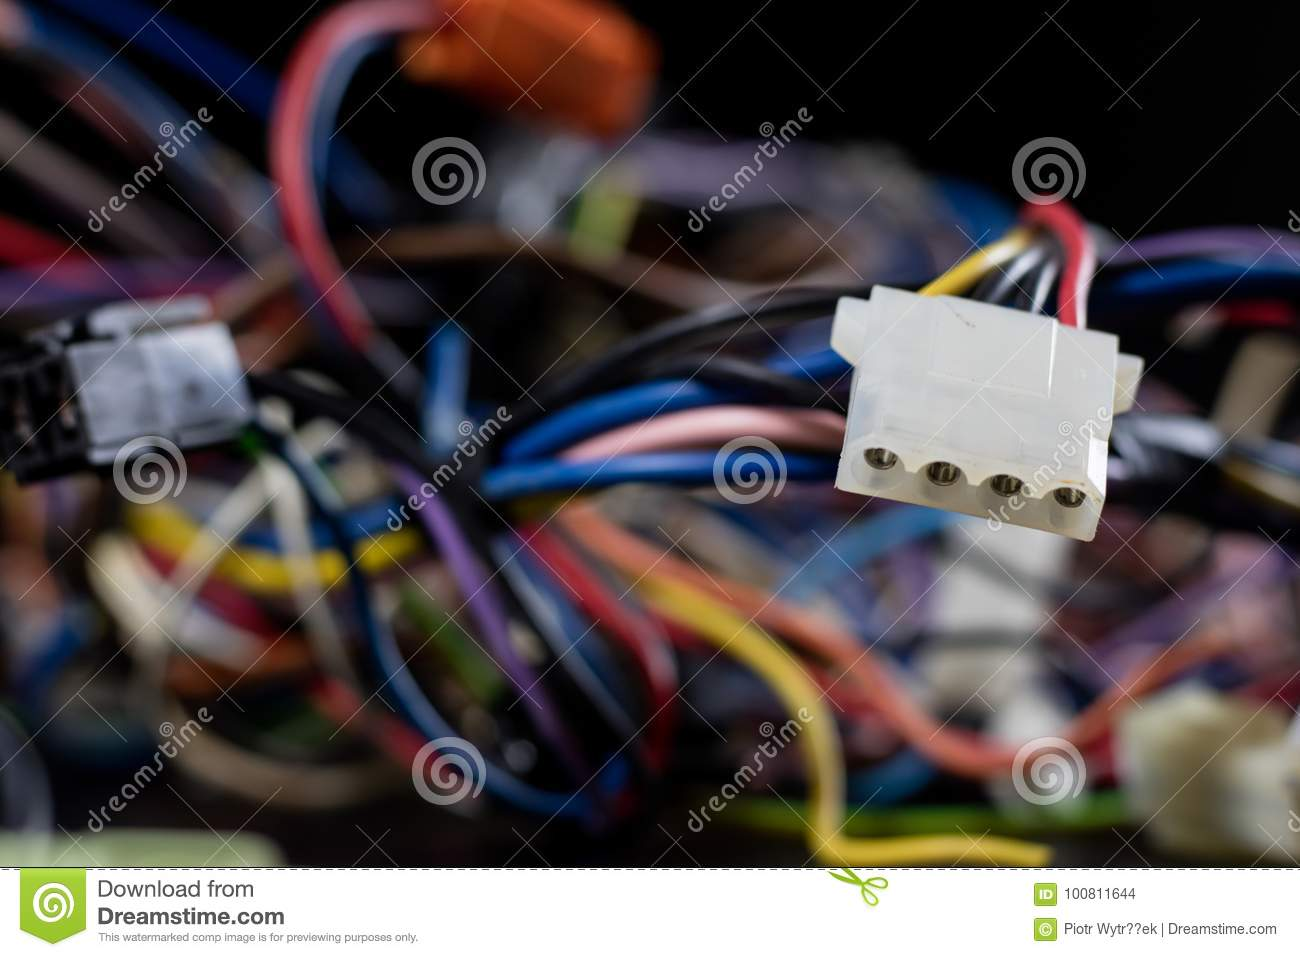 Old entangled cables, electronics and old cable connectors on a